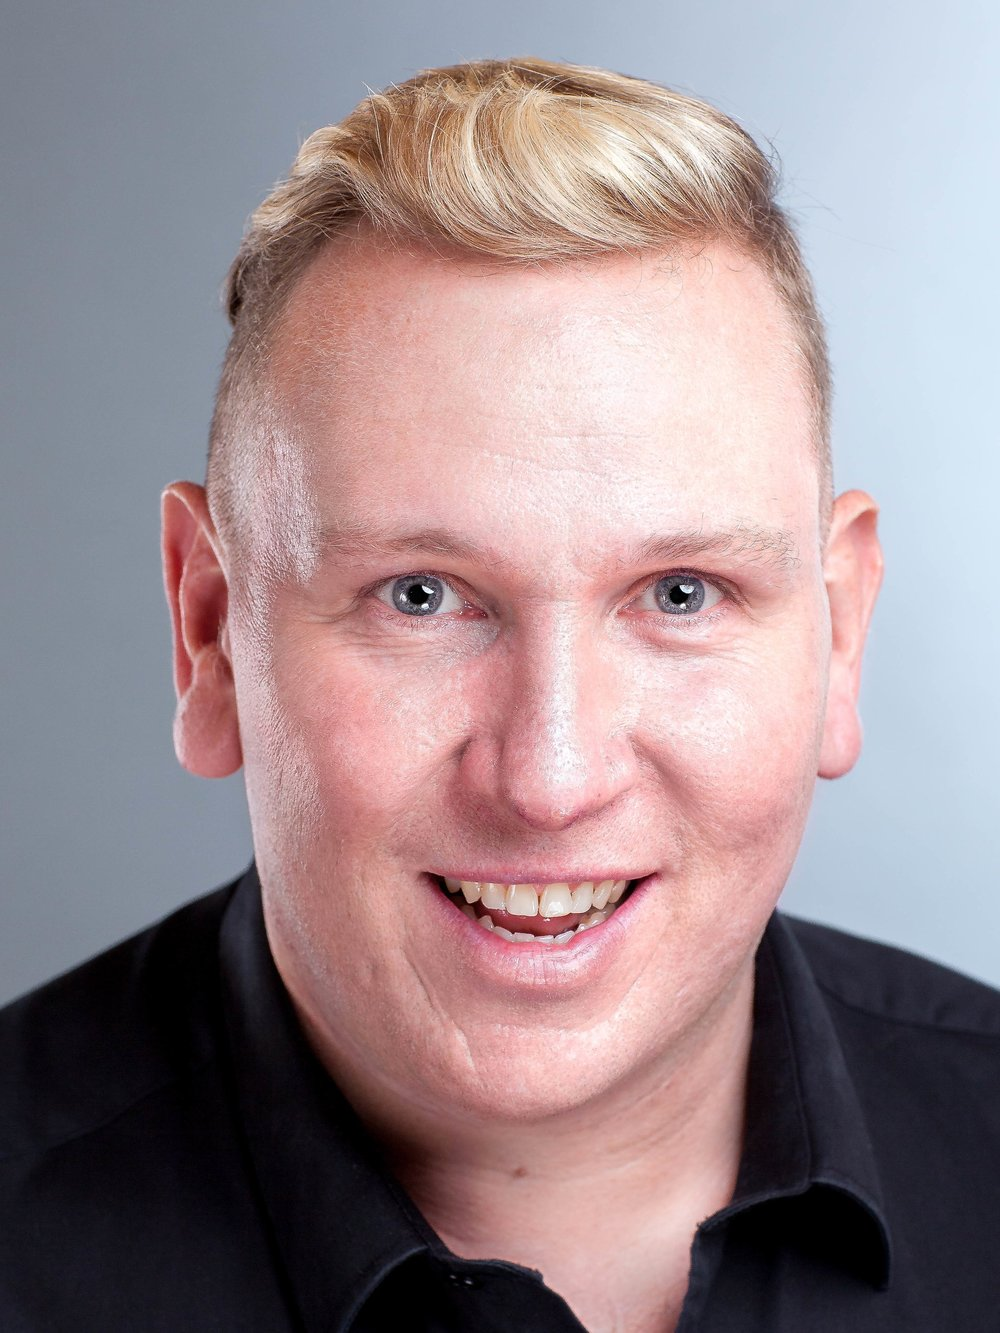 Musical Director -Trevor Jones - Avenue Q (Prince Moo Productions), 25th Annual Putnam County Spelling Bee (Vic Theatre Company, 2016), Dogfight (Doorstep Arts, 2016), Next to Normal (Doorstep Arts, 2014) as well as Twisted Broadway 2017.